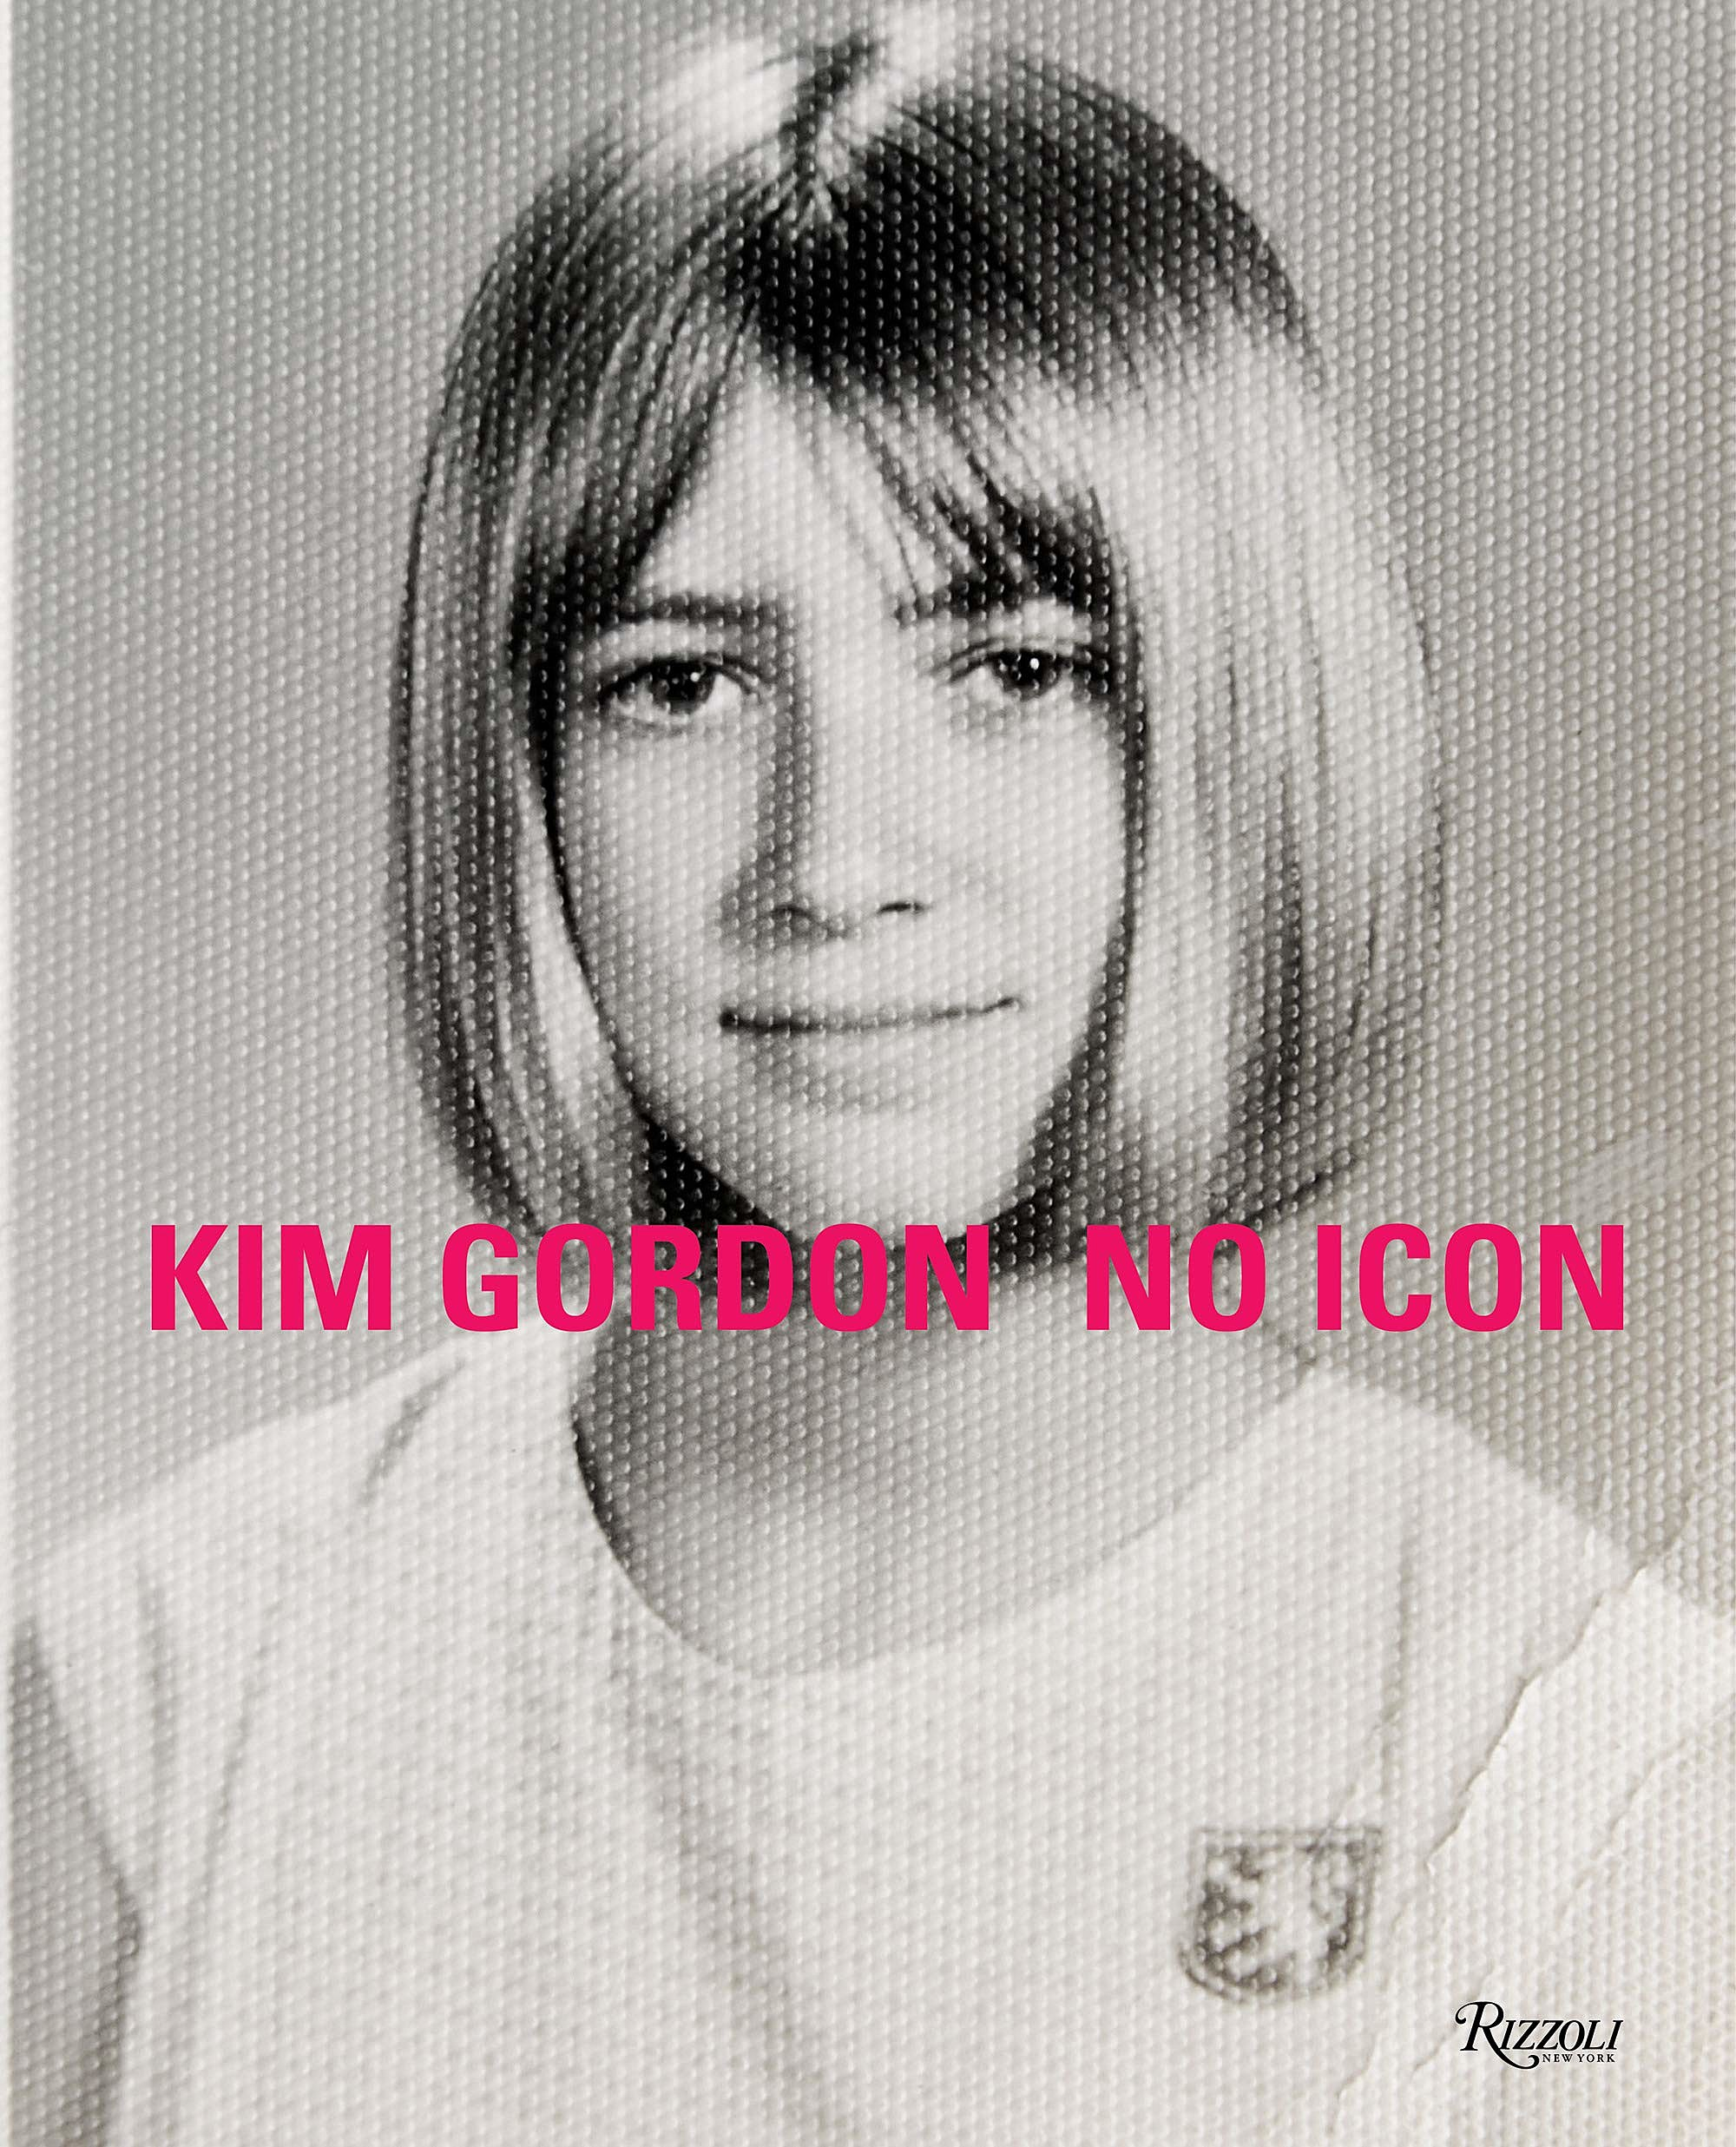 Kim Gordon releasing new book 'No Icon' w/ foreword by Carrie Brownstein